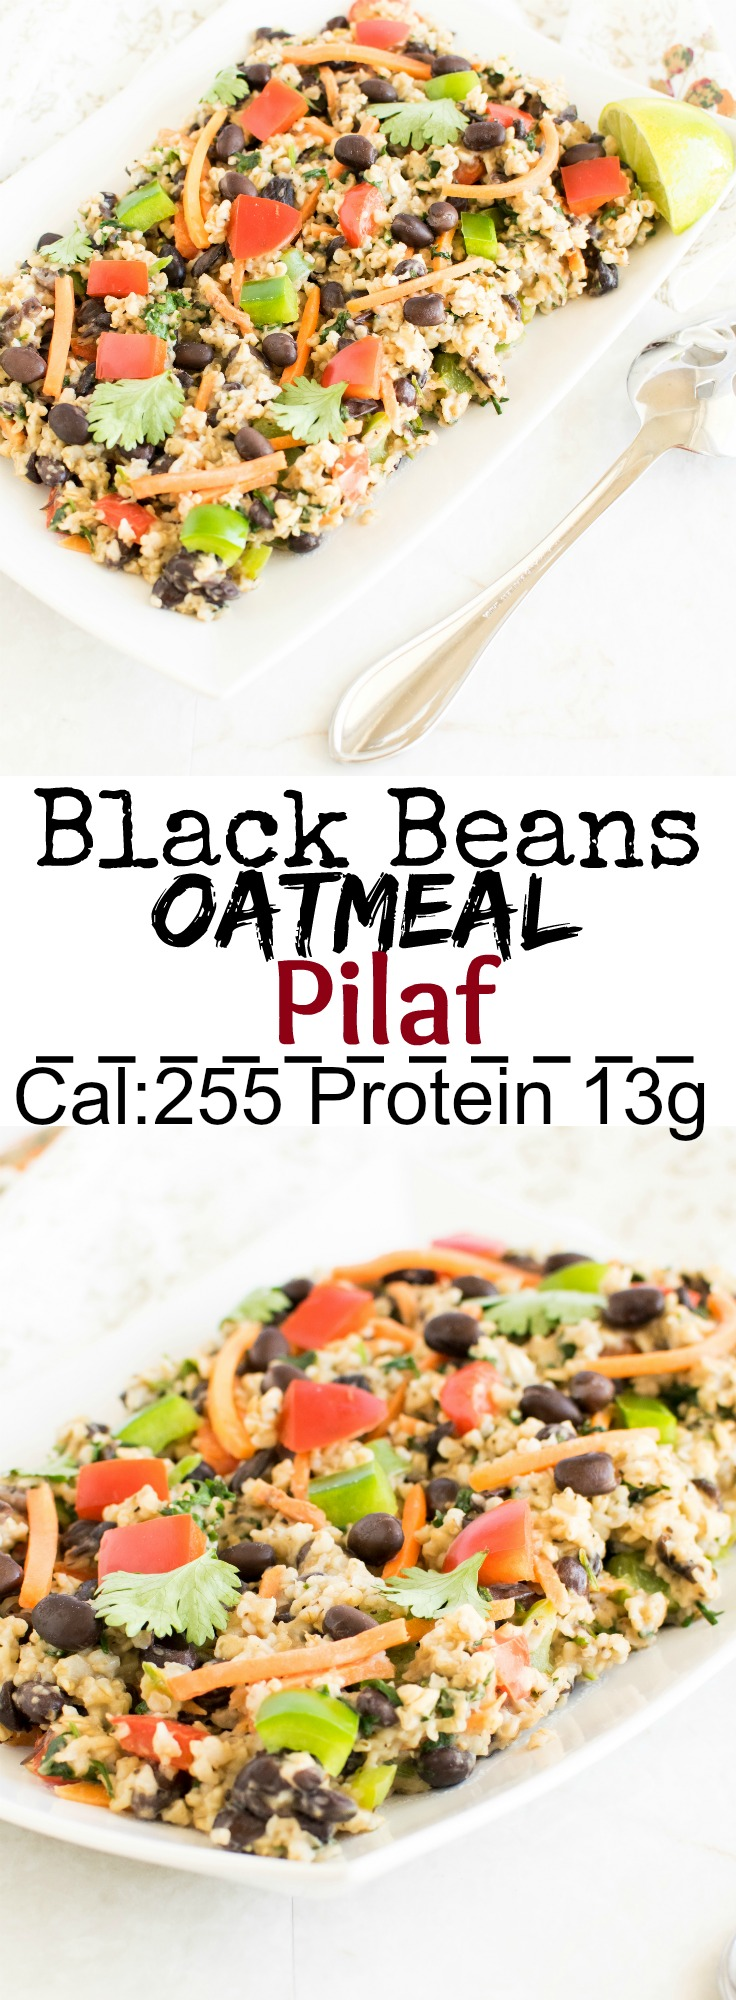 Black Beans Oatmeal Pilaf | flavorful and protein rich vegan bakc to school lunch box recipe | kiipfit.com